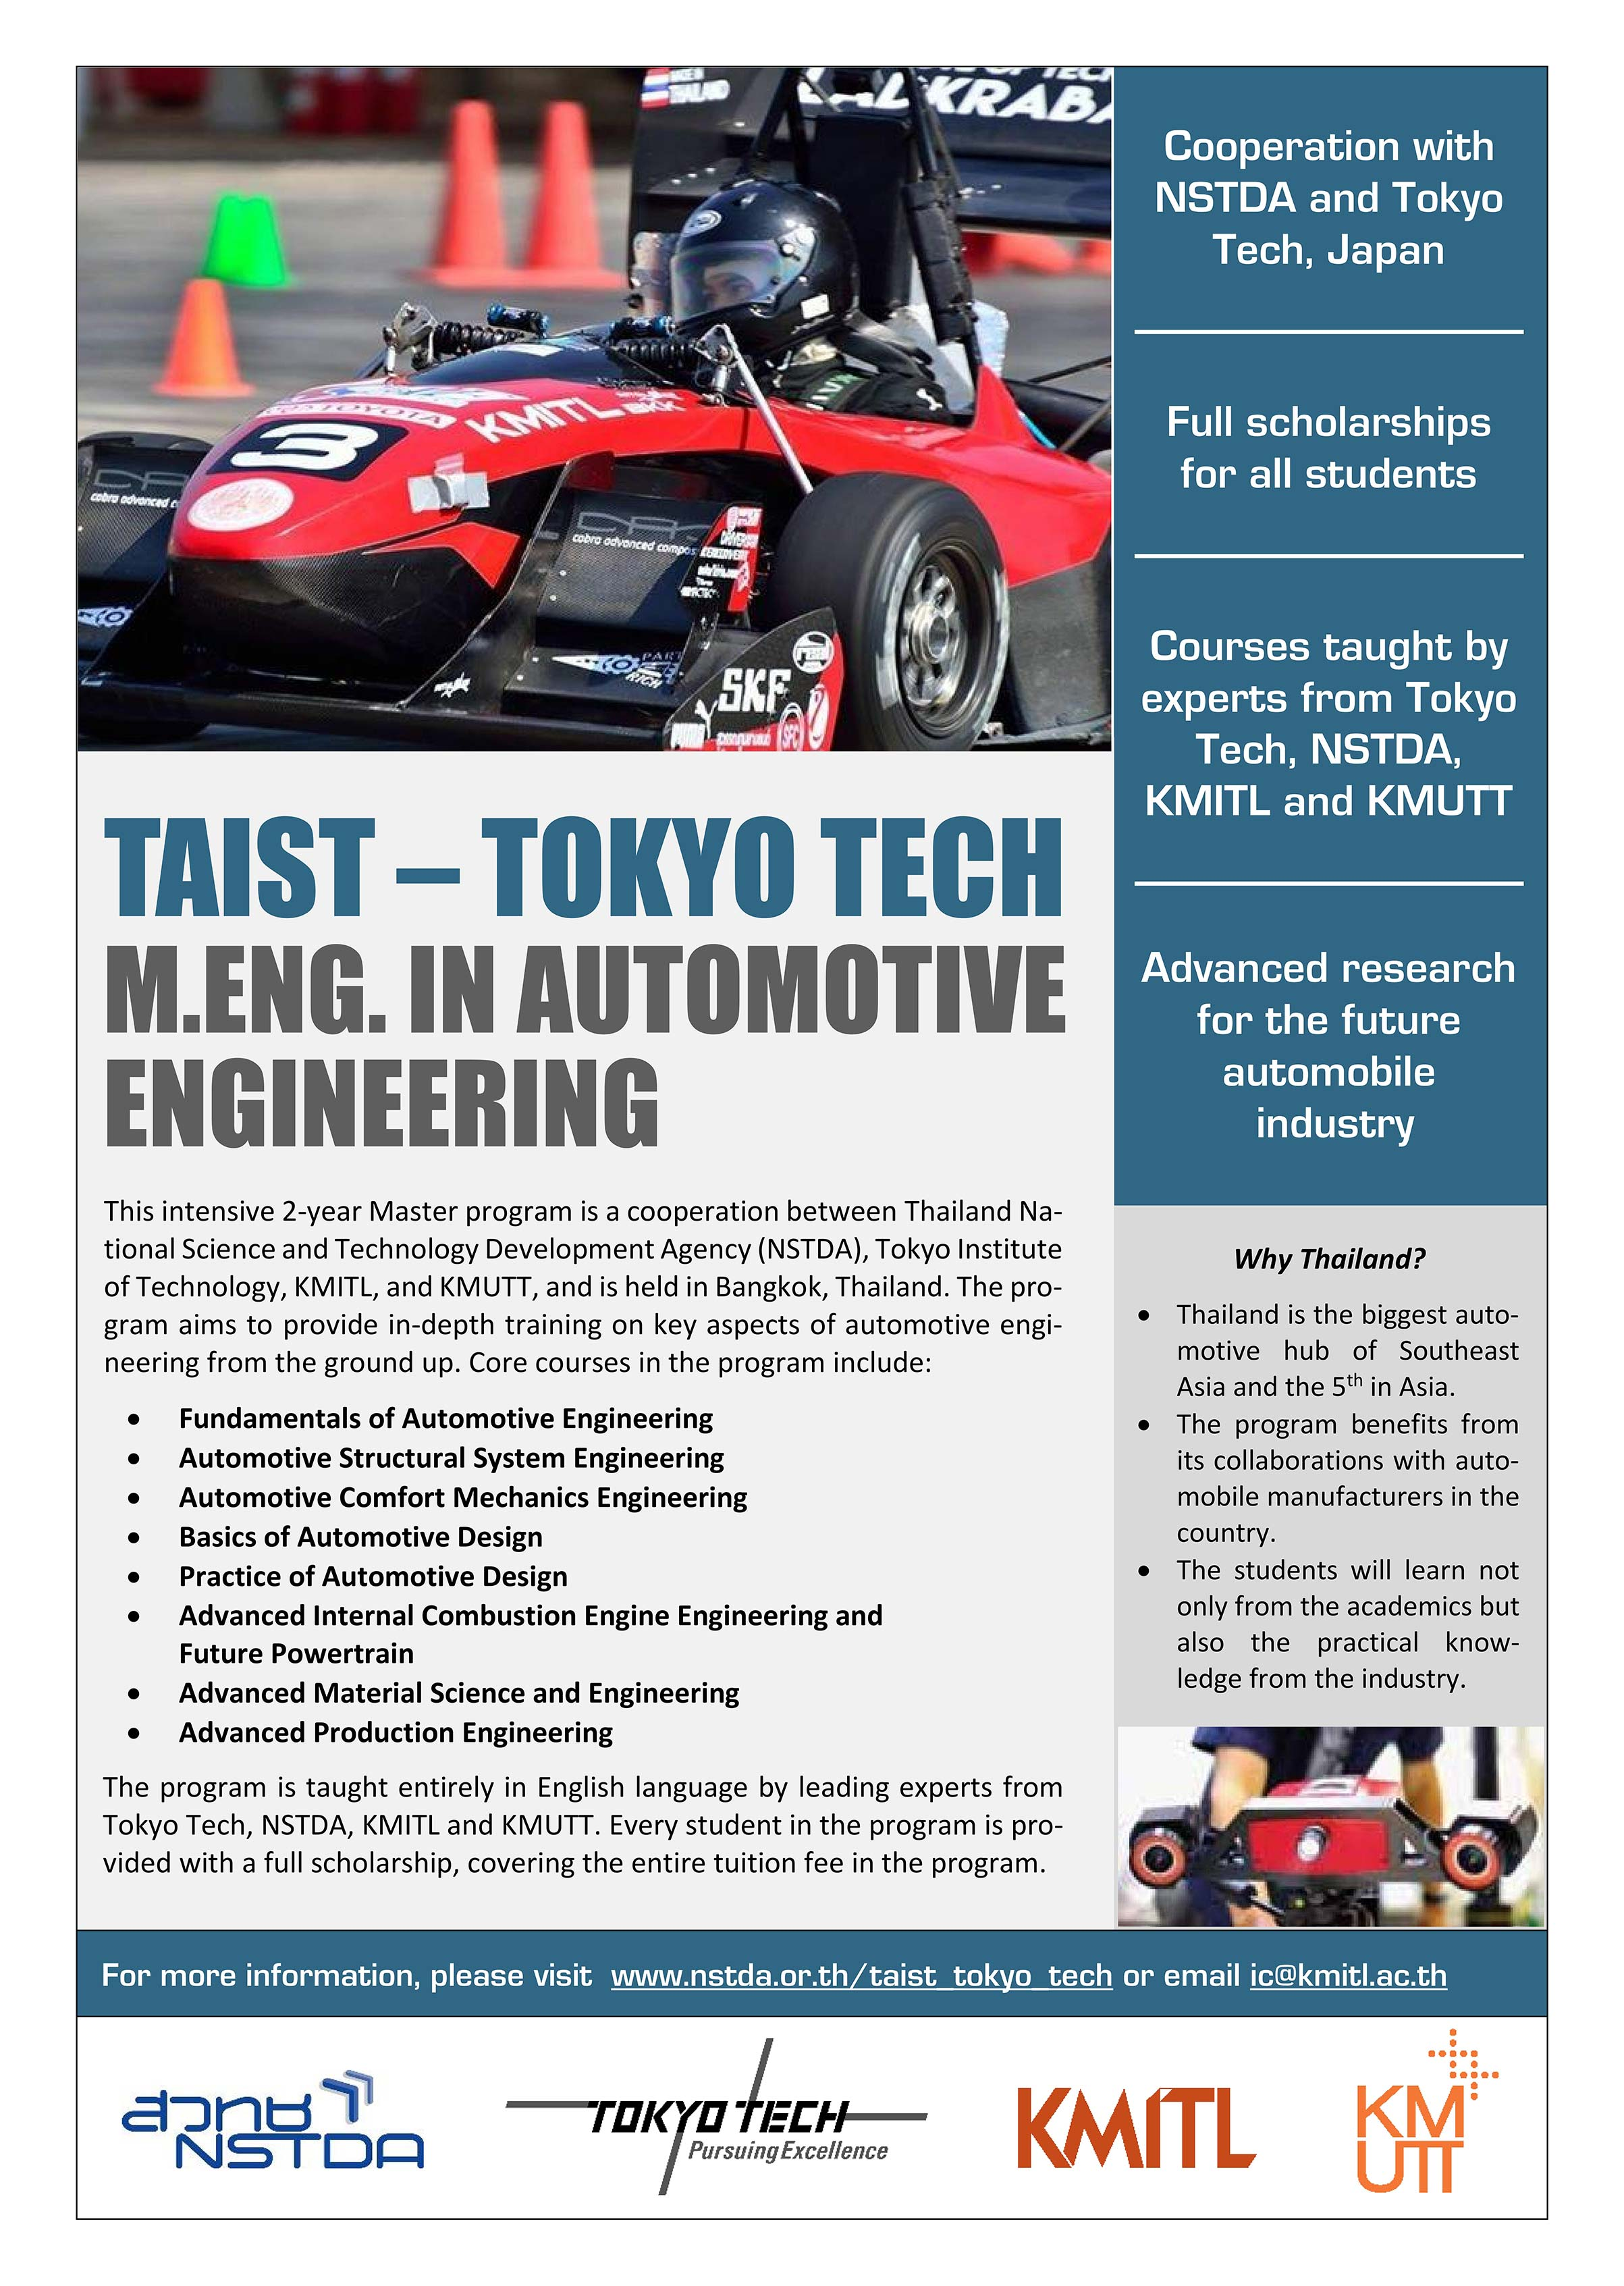 TAIST - Tokyo Tech Automotive Engineering